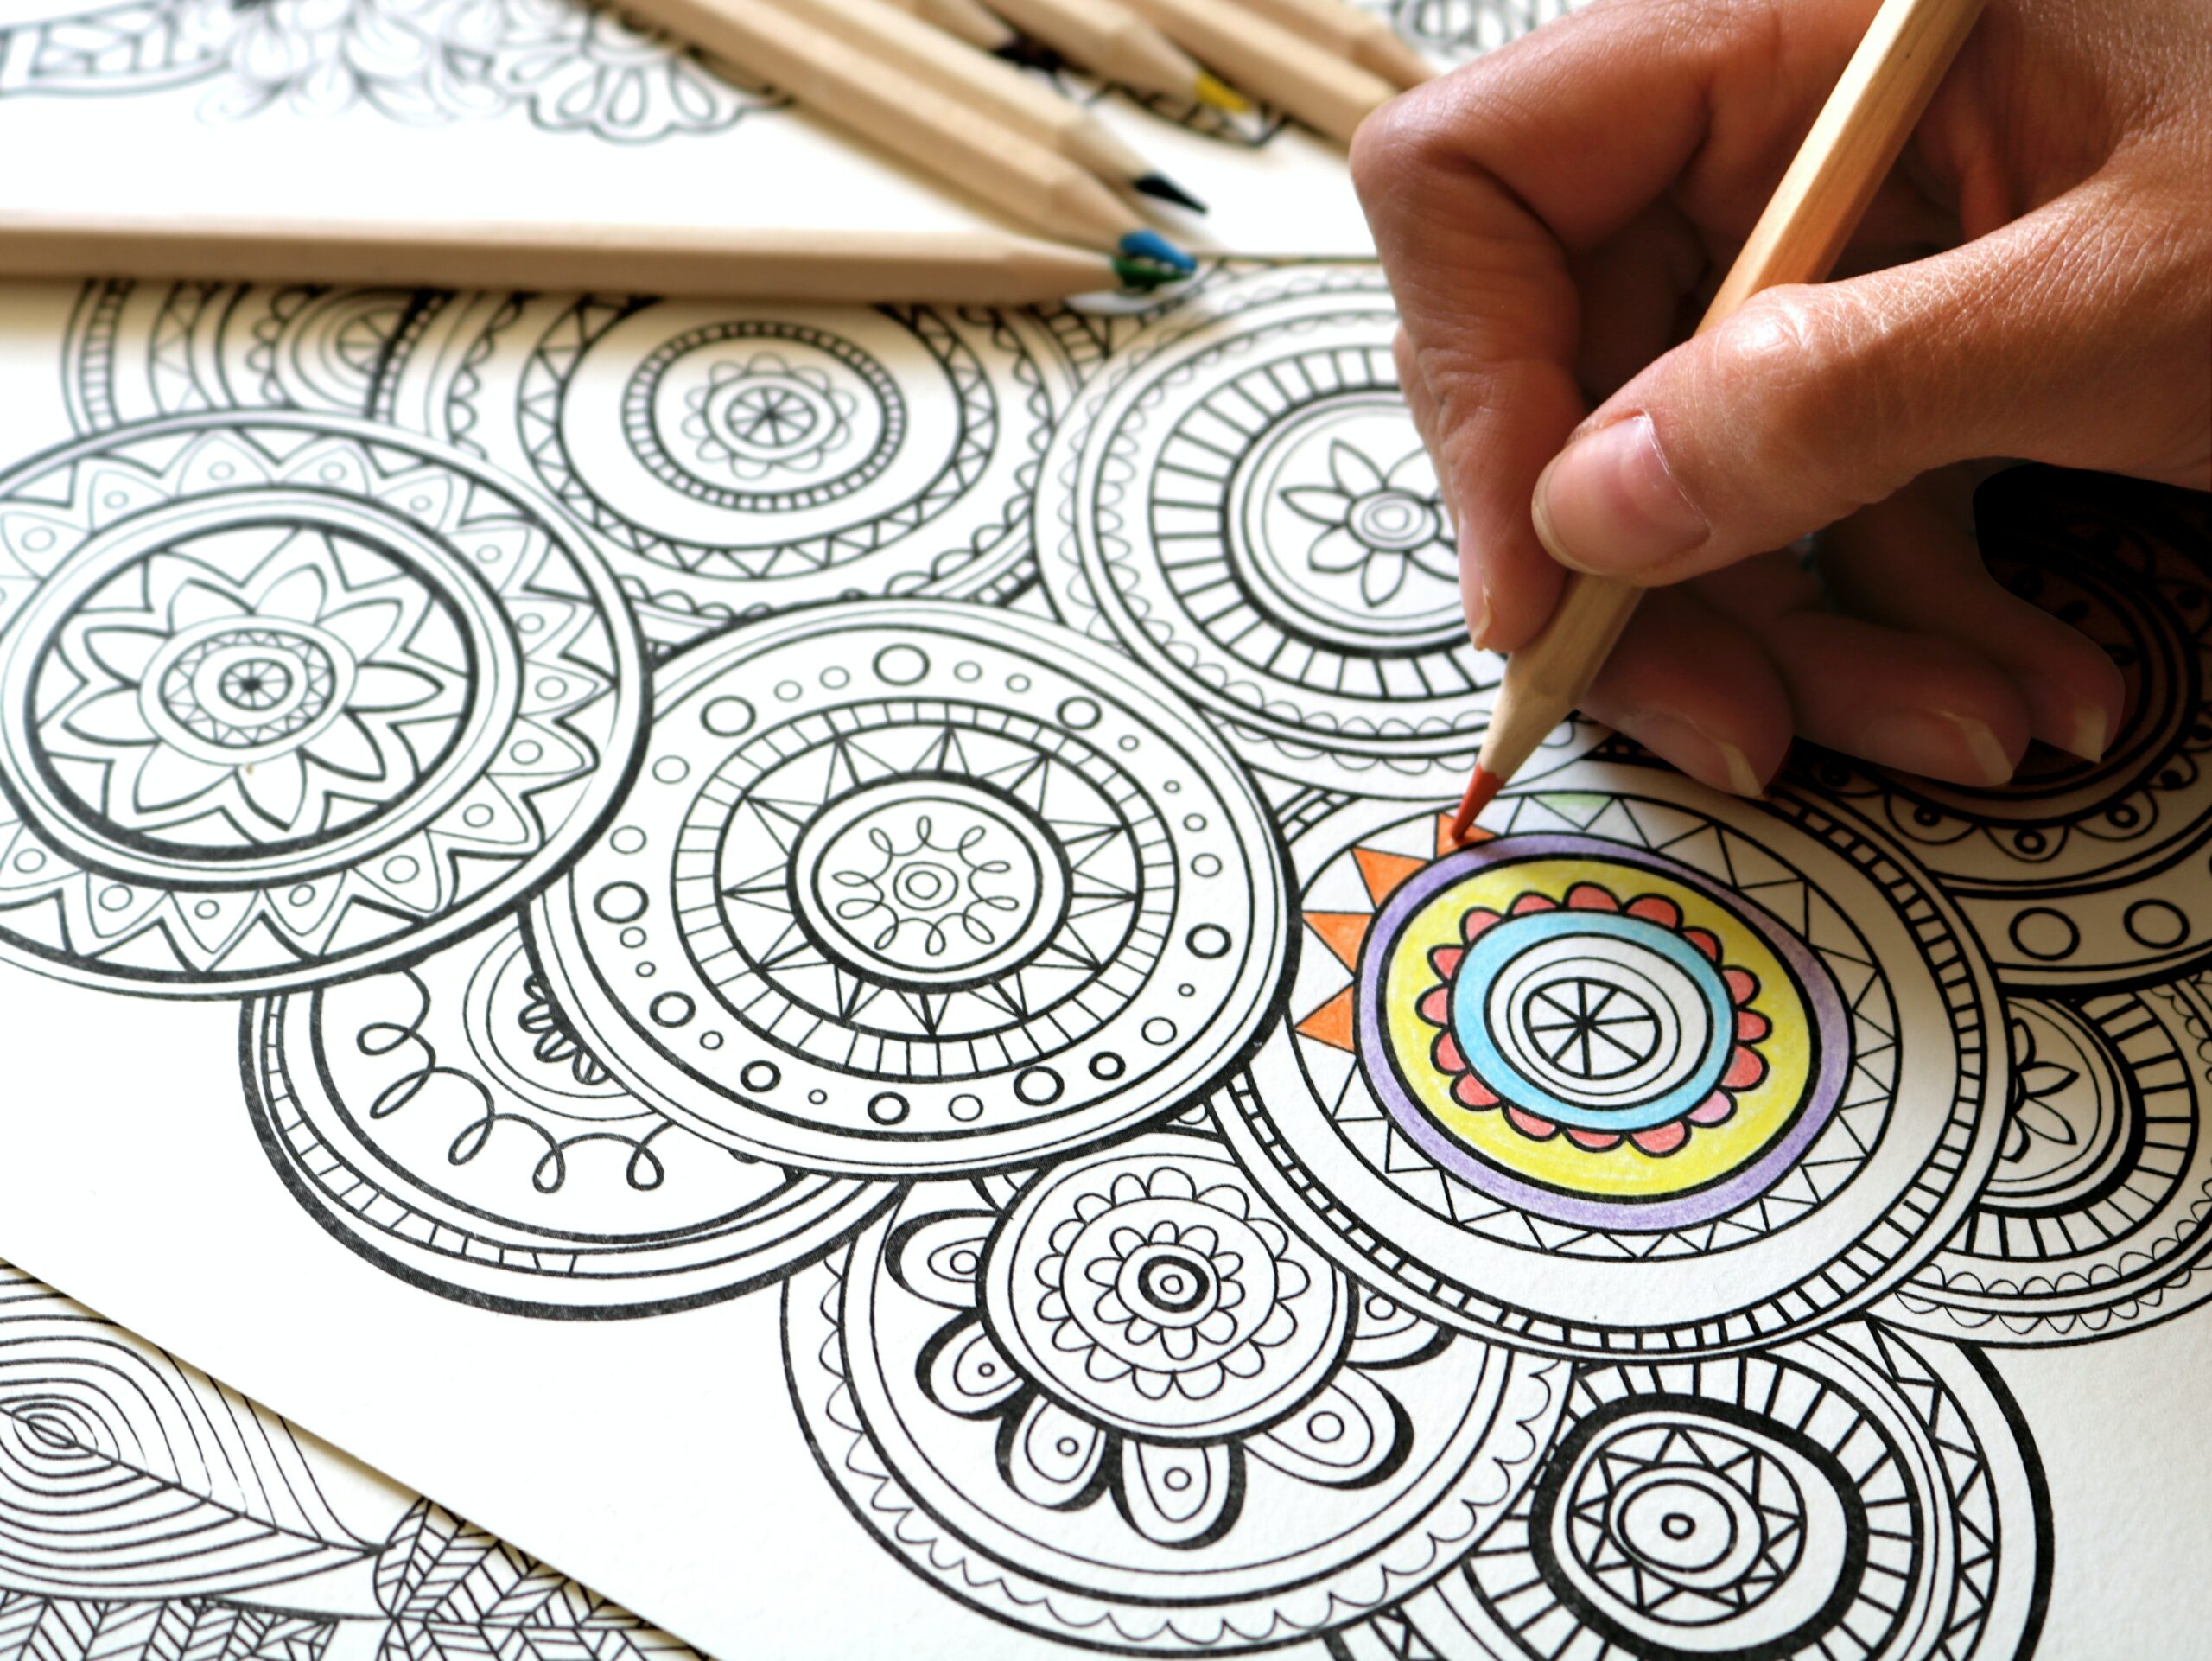 a teacher coloring an adult coloring book